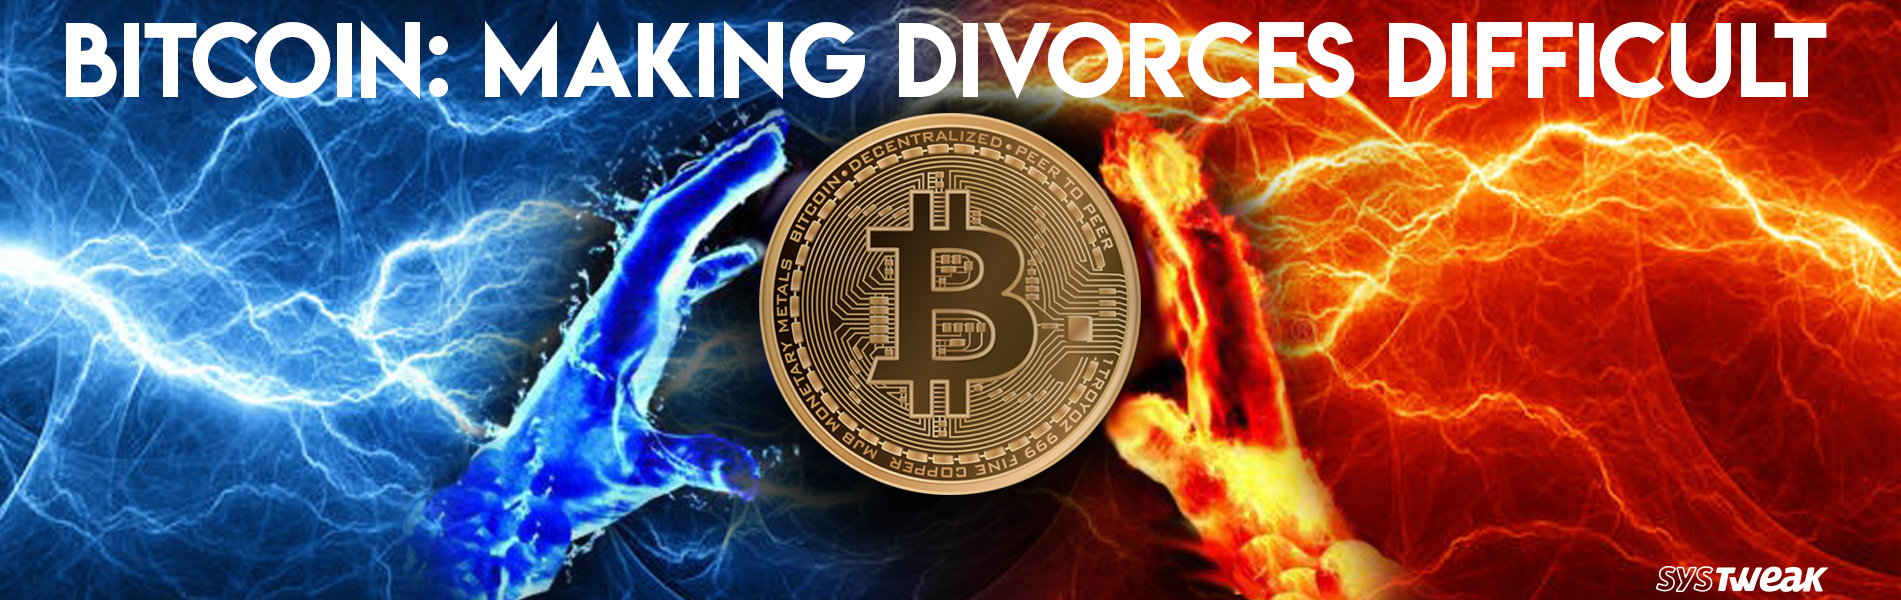 Divorces Made Difficult, Thanks to Bitcoin